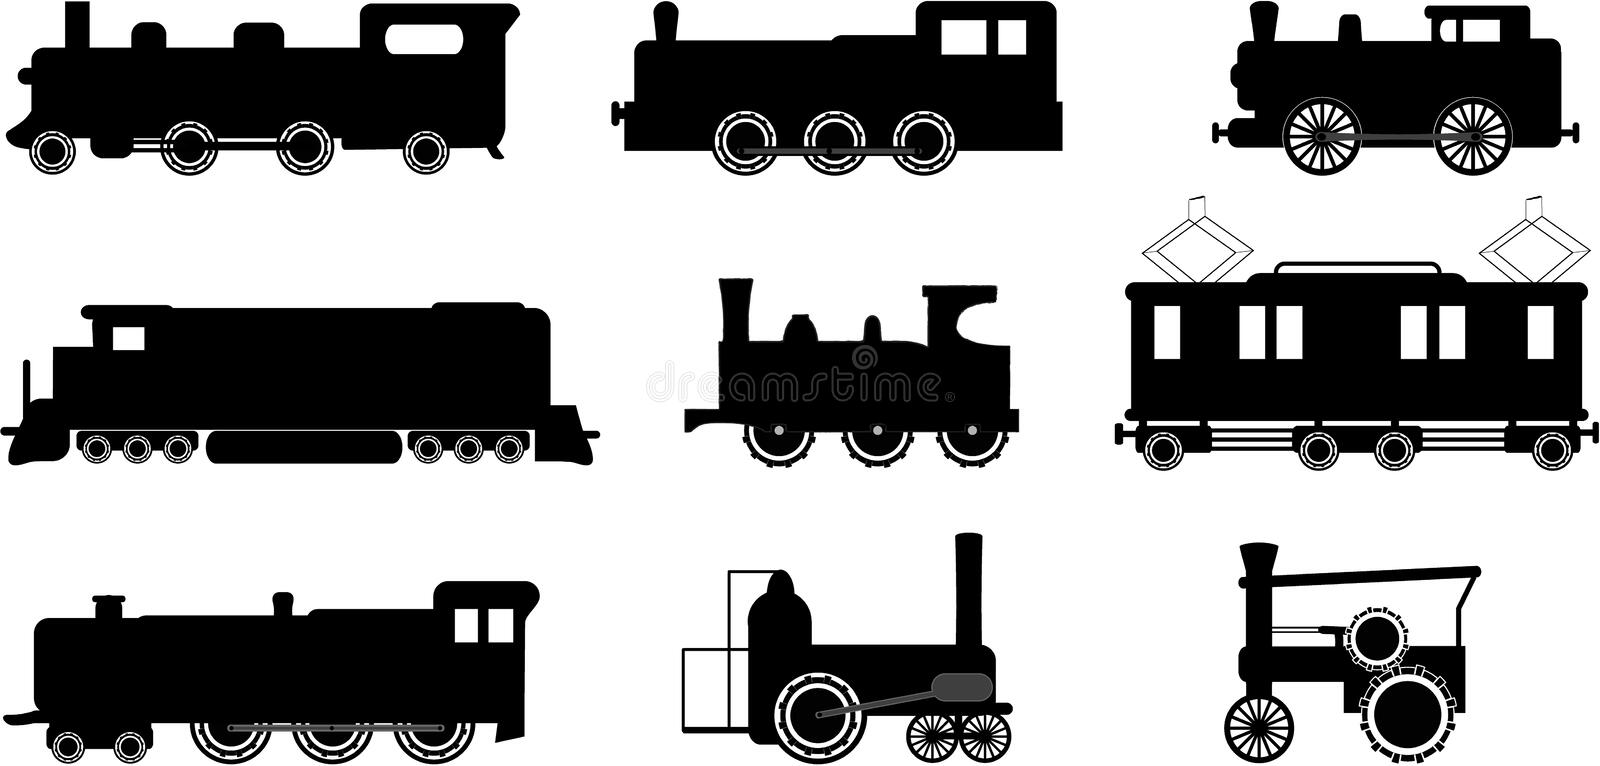 Illustrations de train images stock